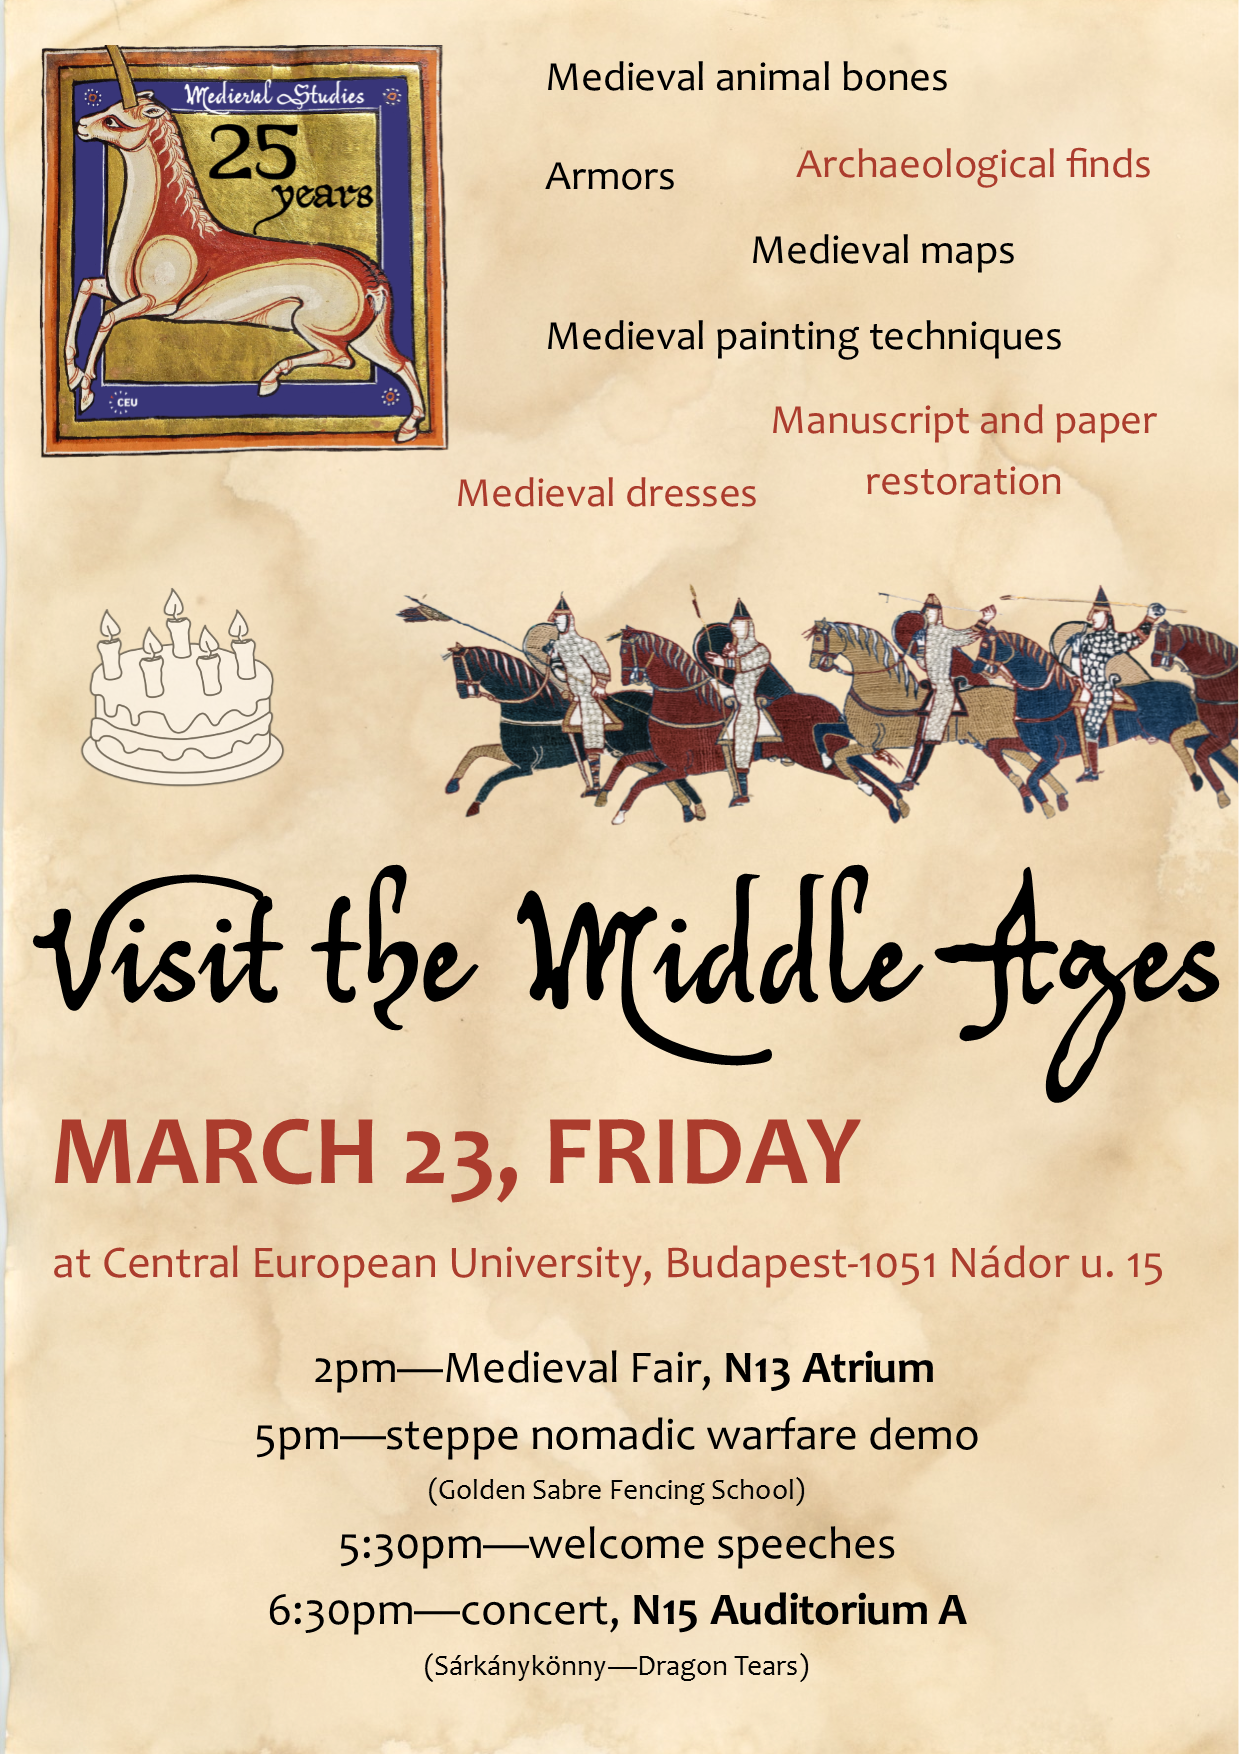 Visit the Middle Ages - March 23, 2018